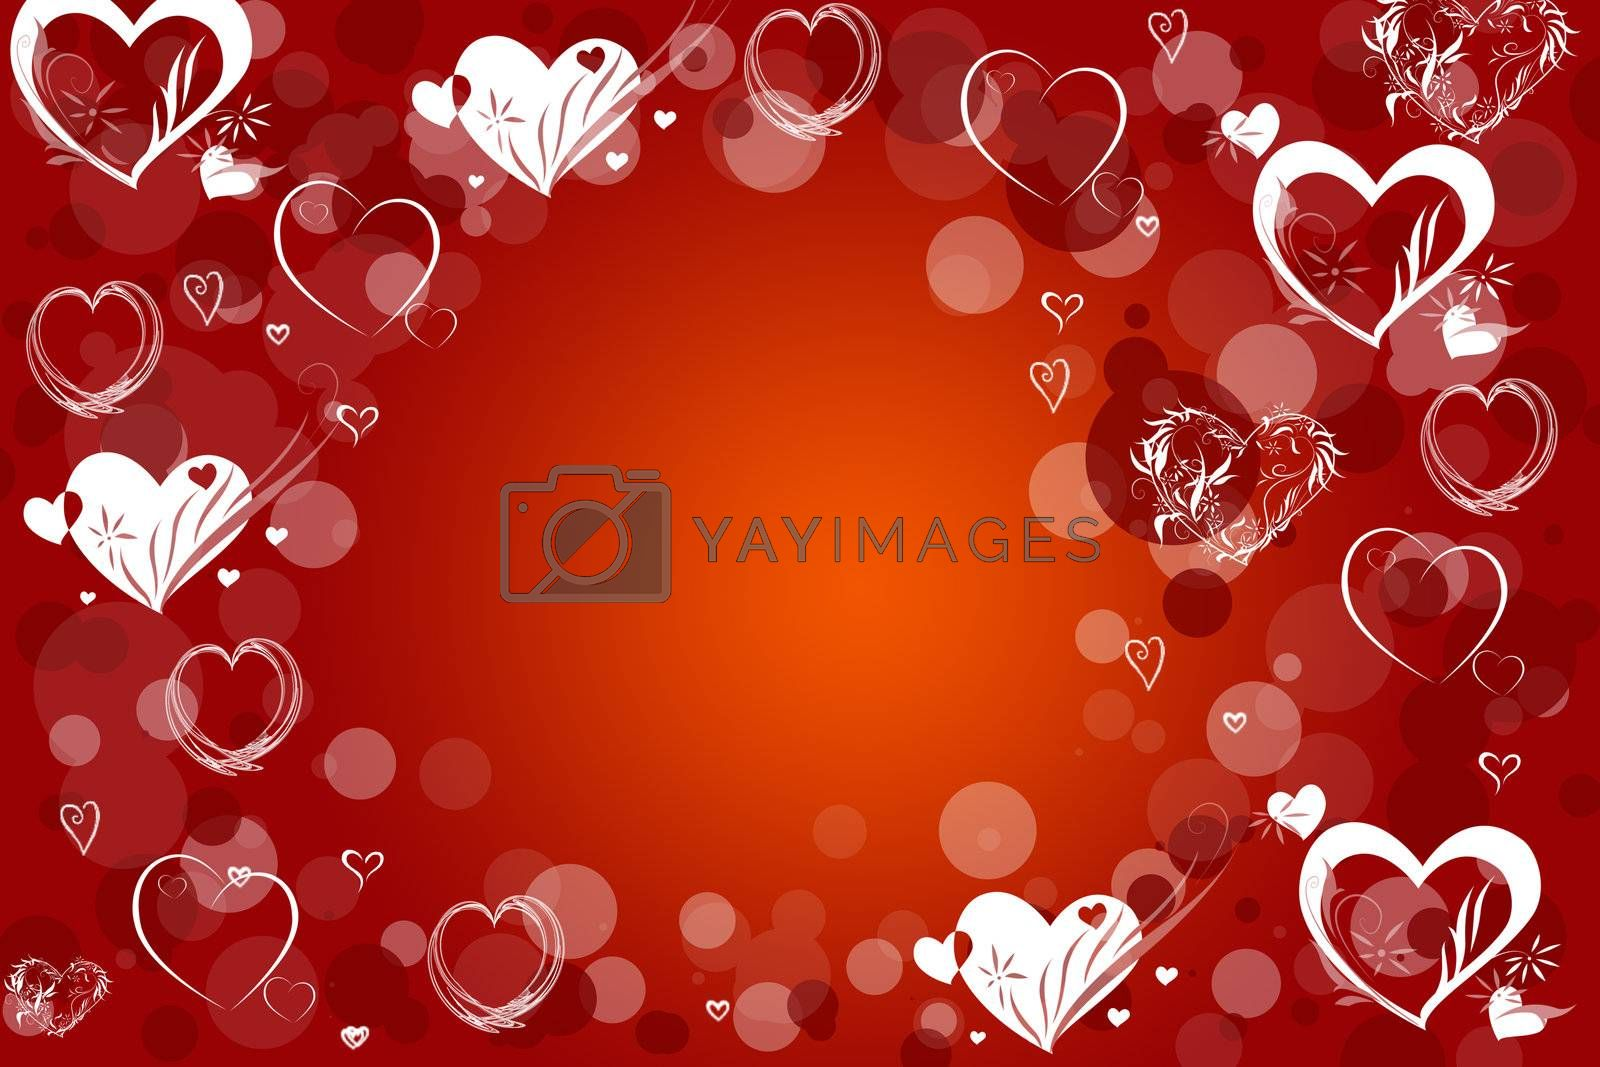 Abstraction  love red background for design artworks